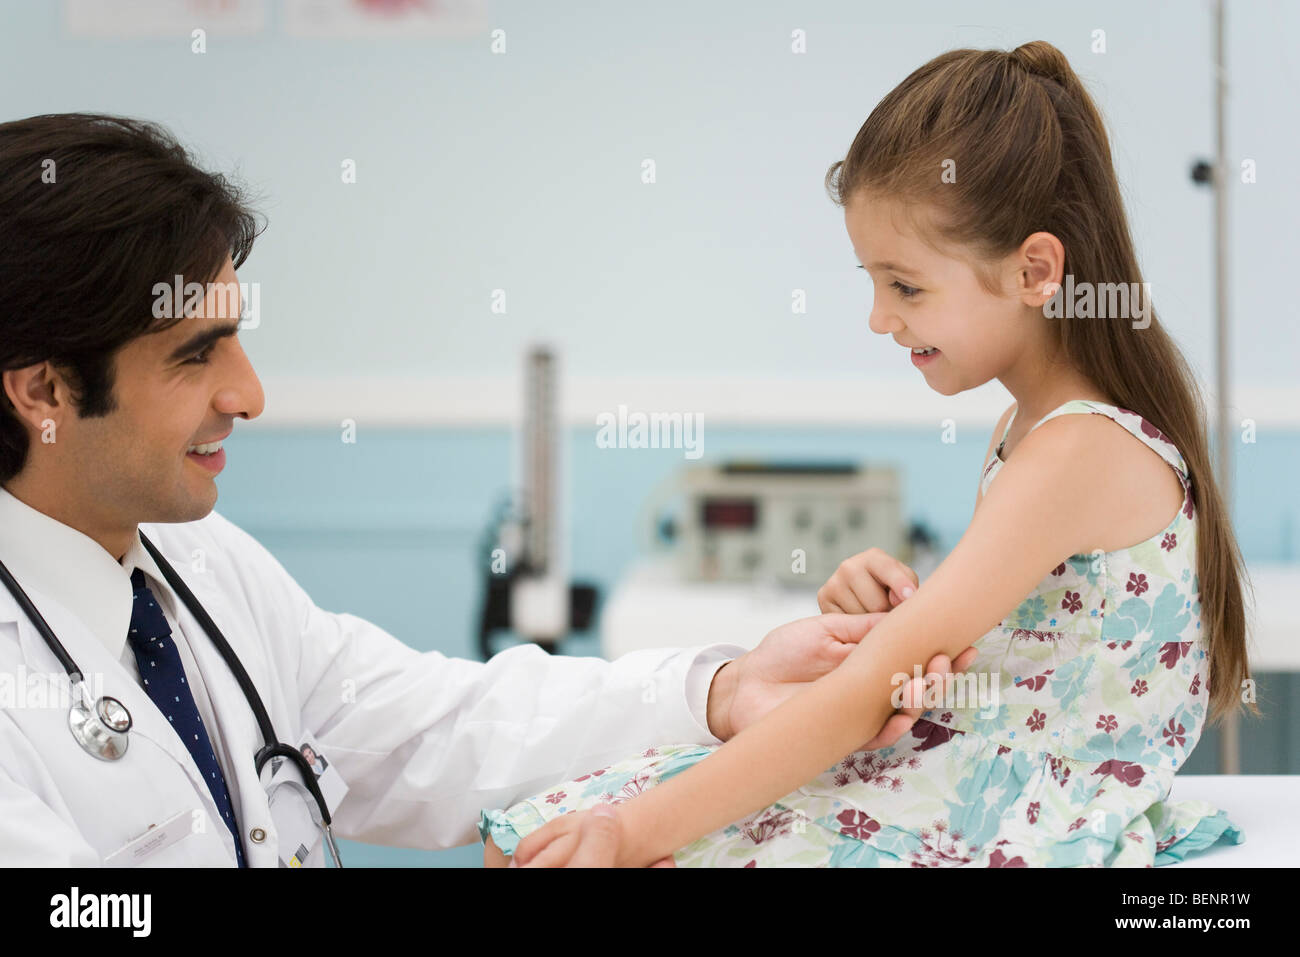 Friendly doctor examining little girl's arm Stock Photo